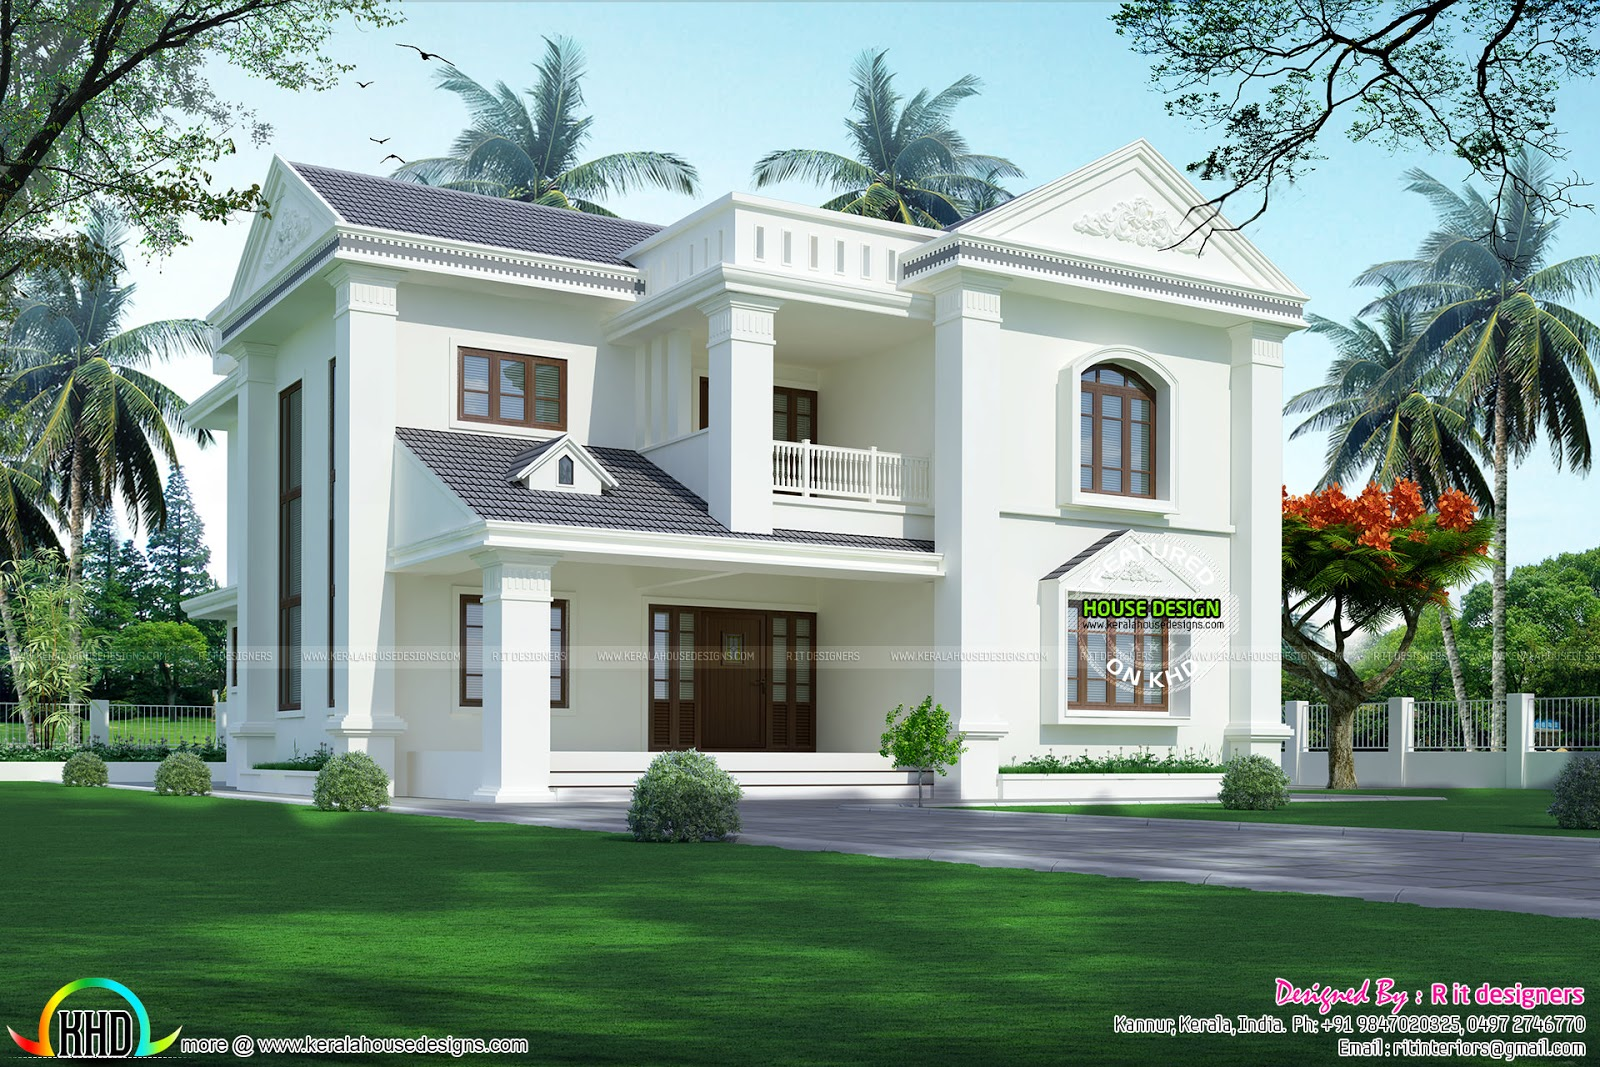 Cute Home Ideas Cute Home Modern Style Kerala Home Design And Floor Plans